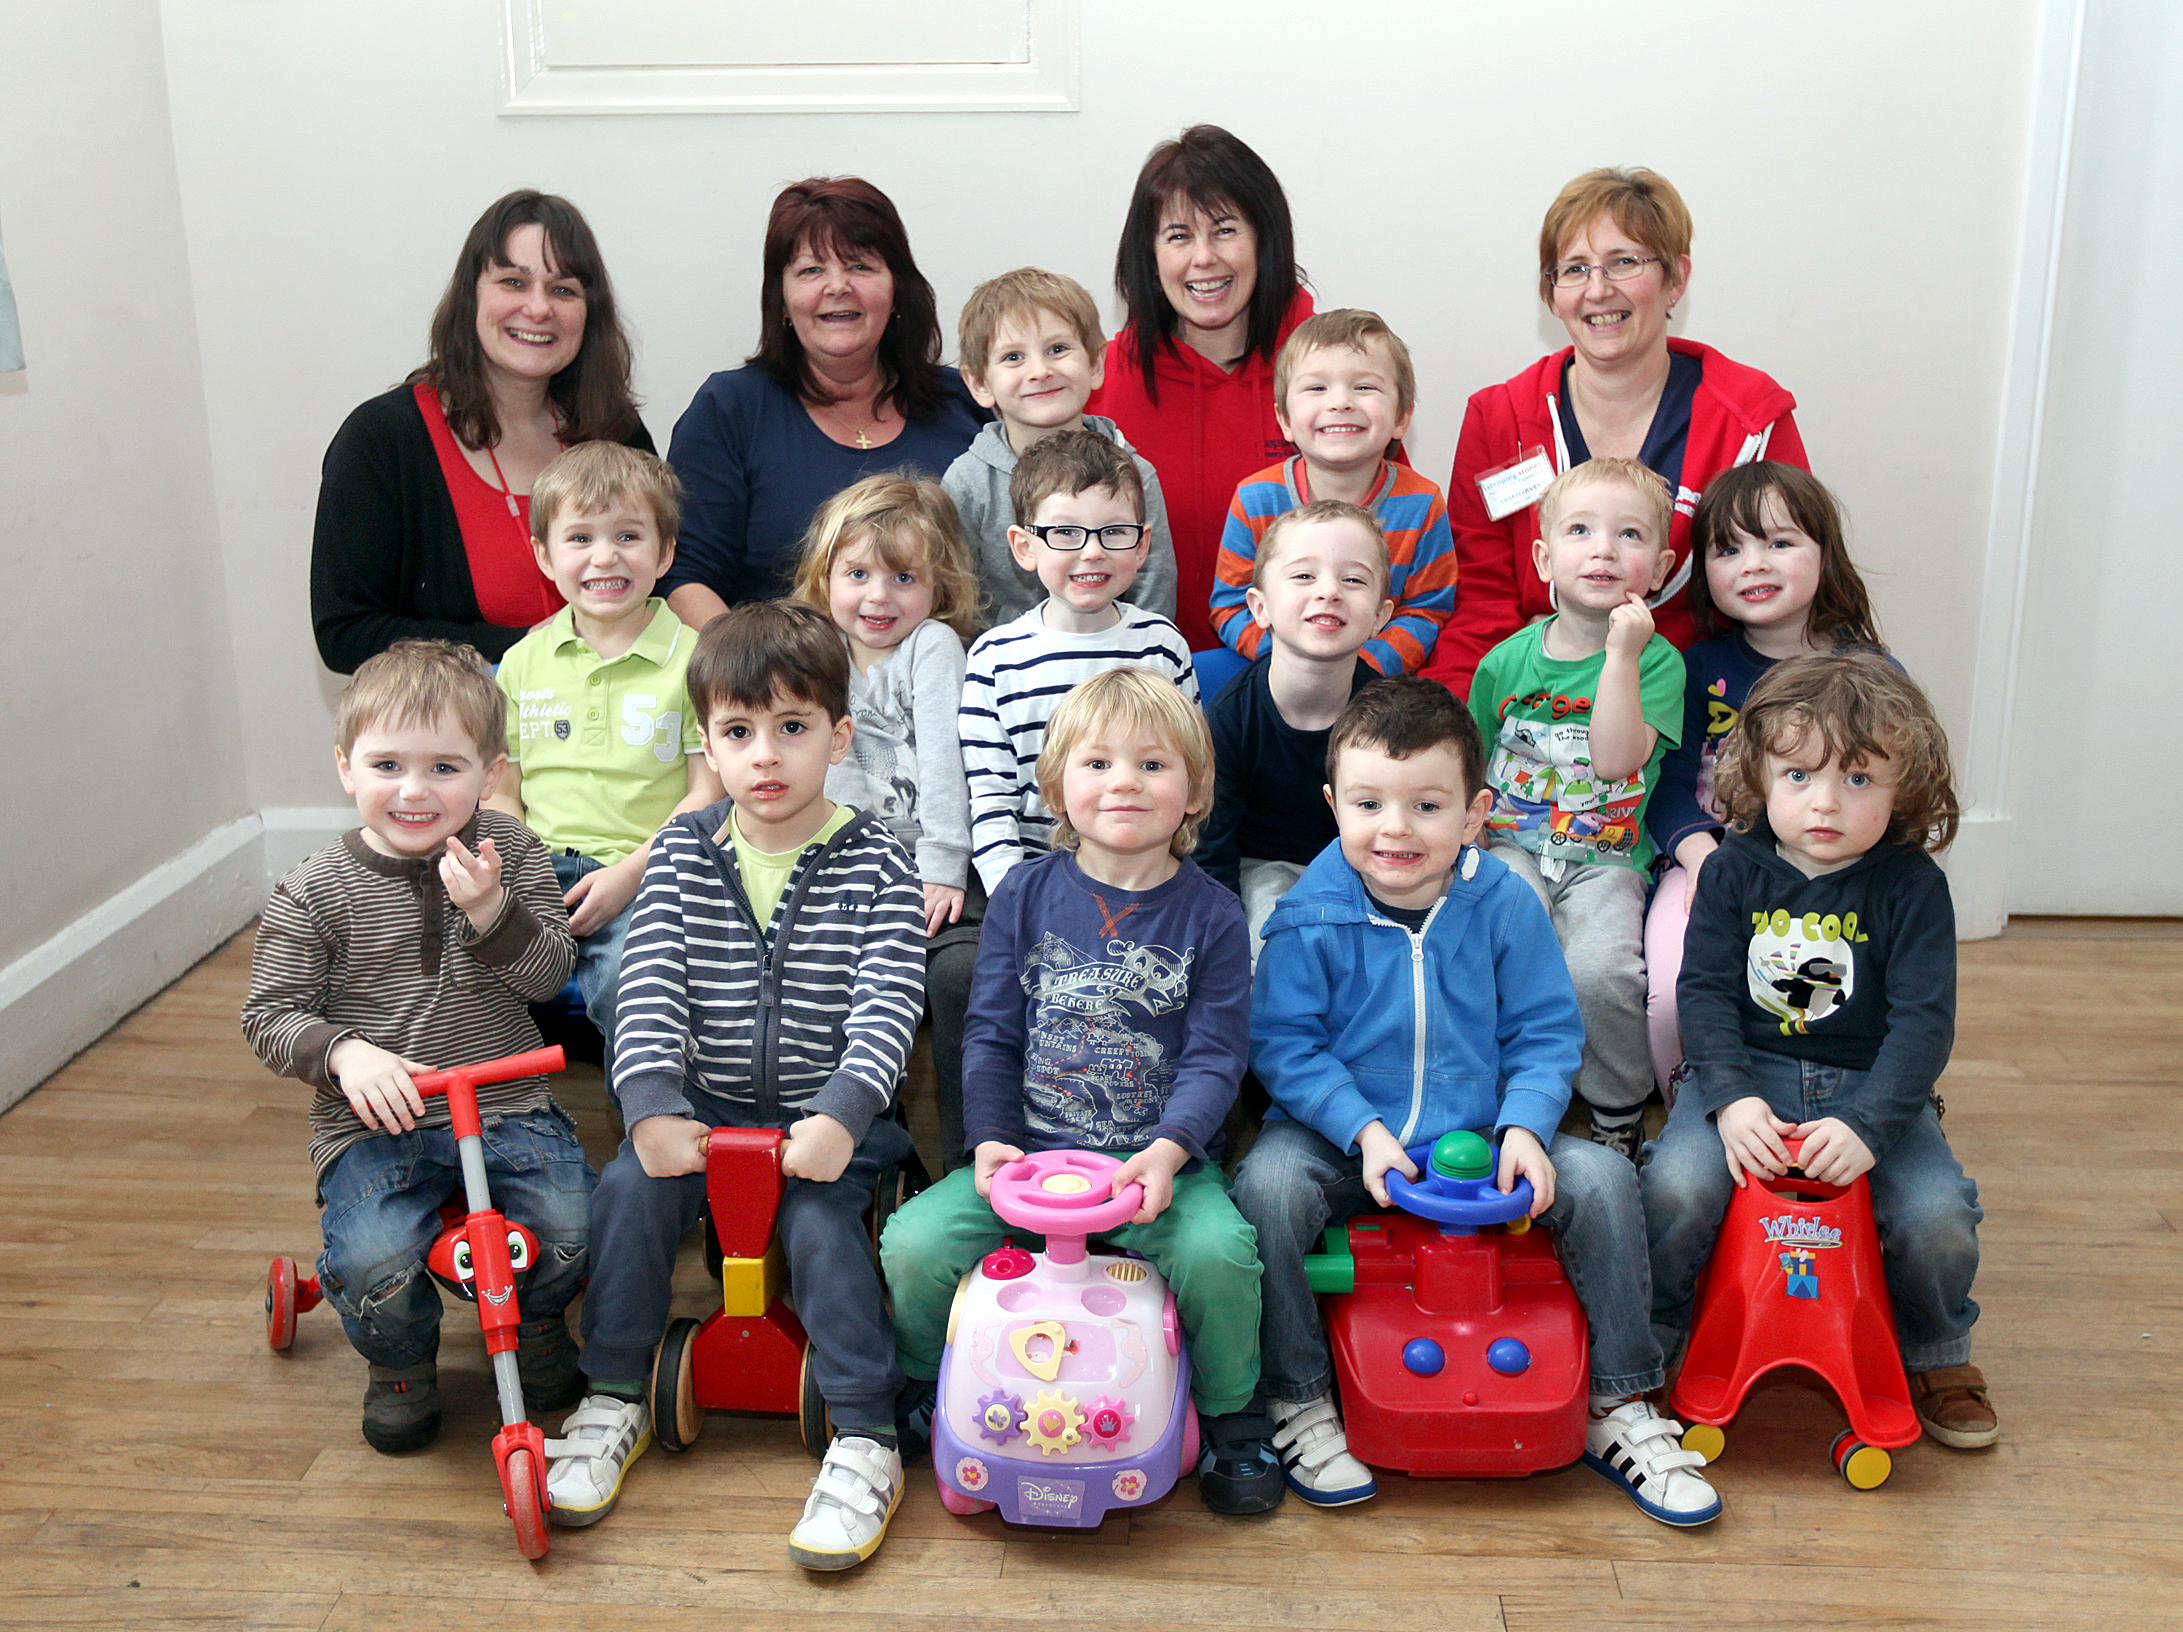 GOOD BEHAVIOUR NOTED: Staff and children at the Stepping Stones Nursery based at Cononley Village  Hall celebrate after being given a good Ofsted report